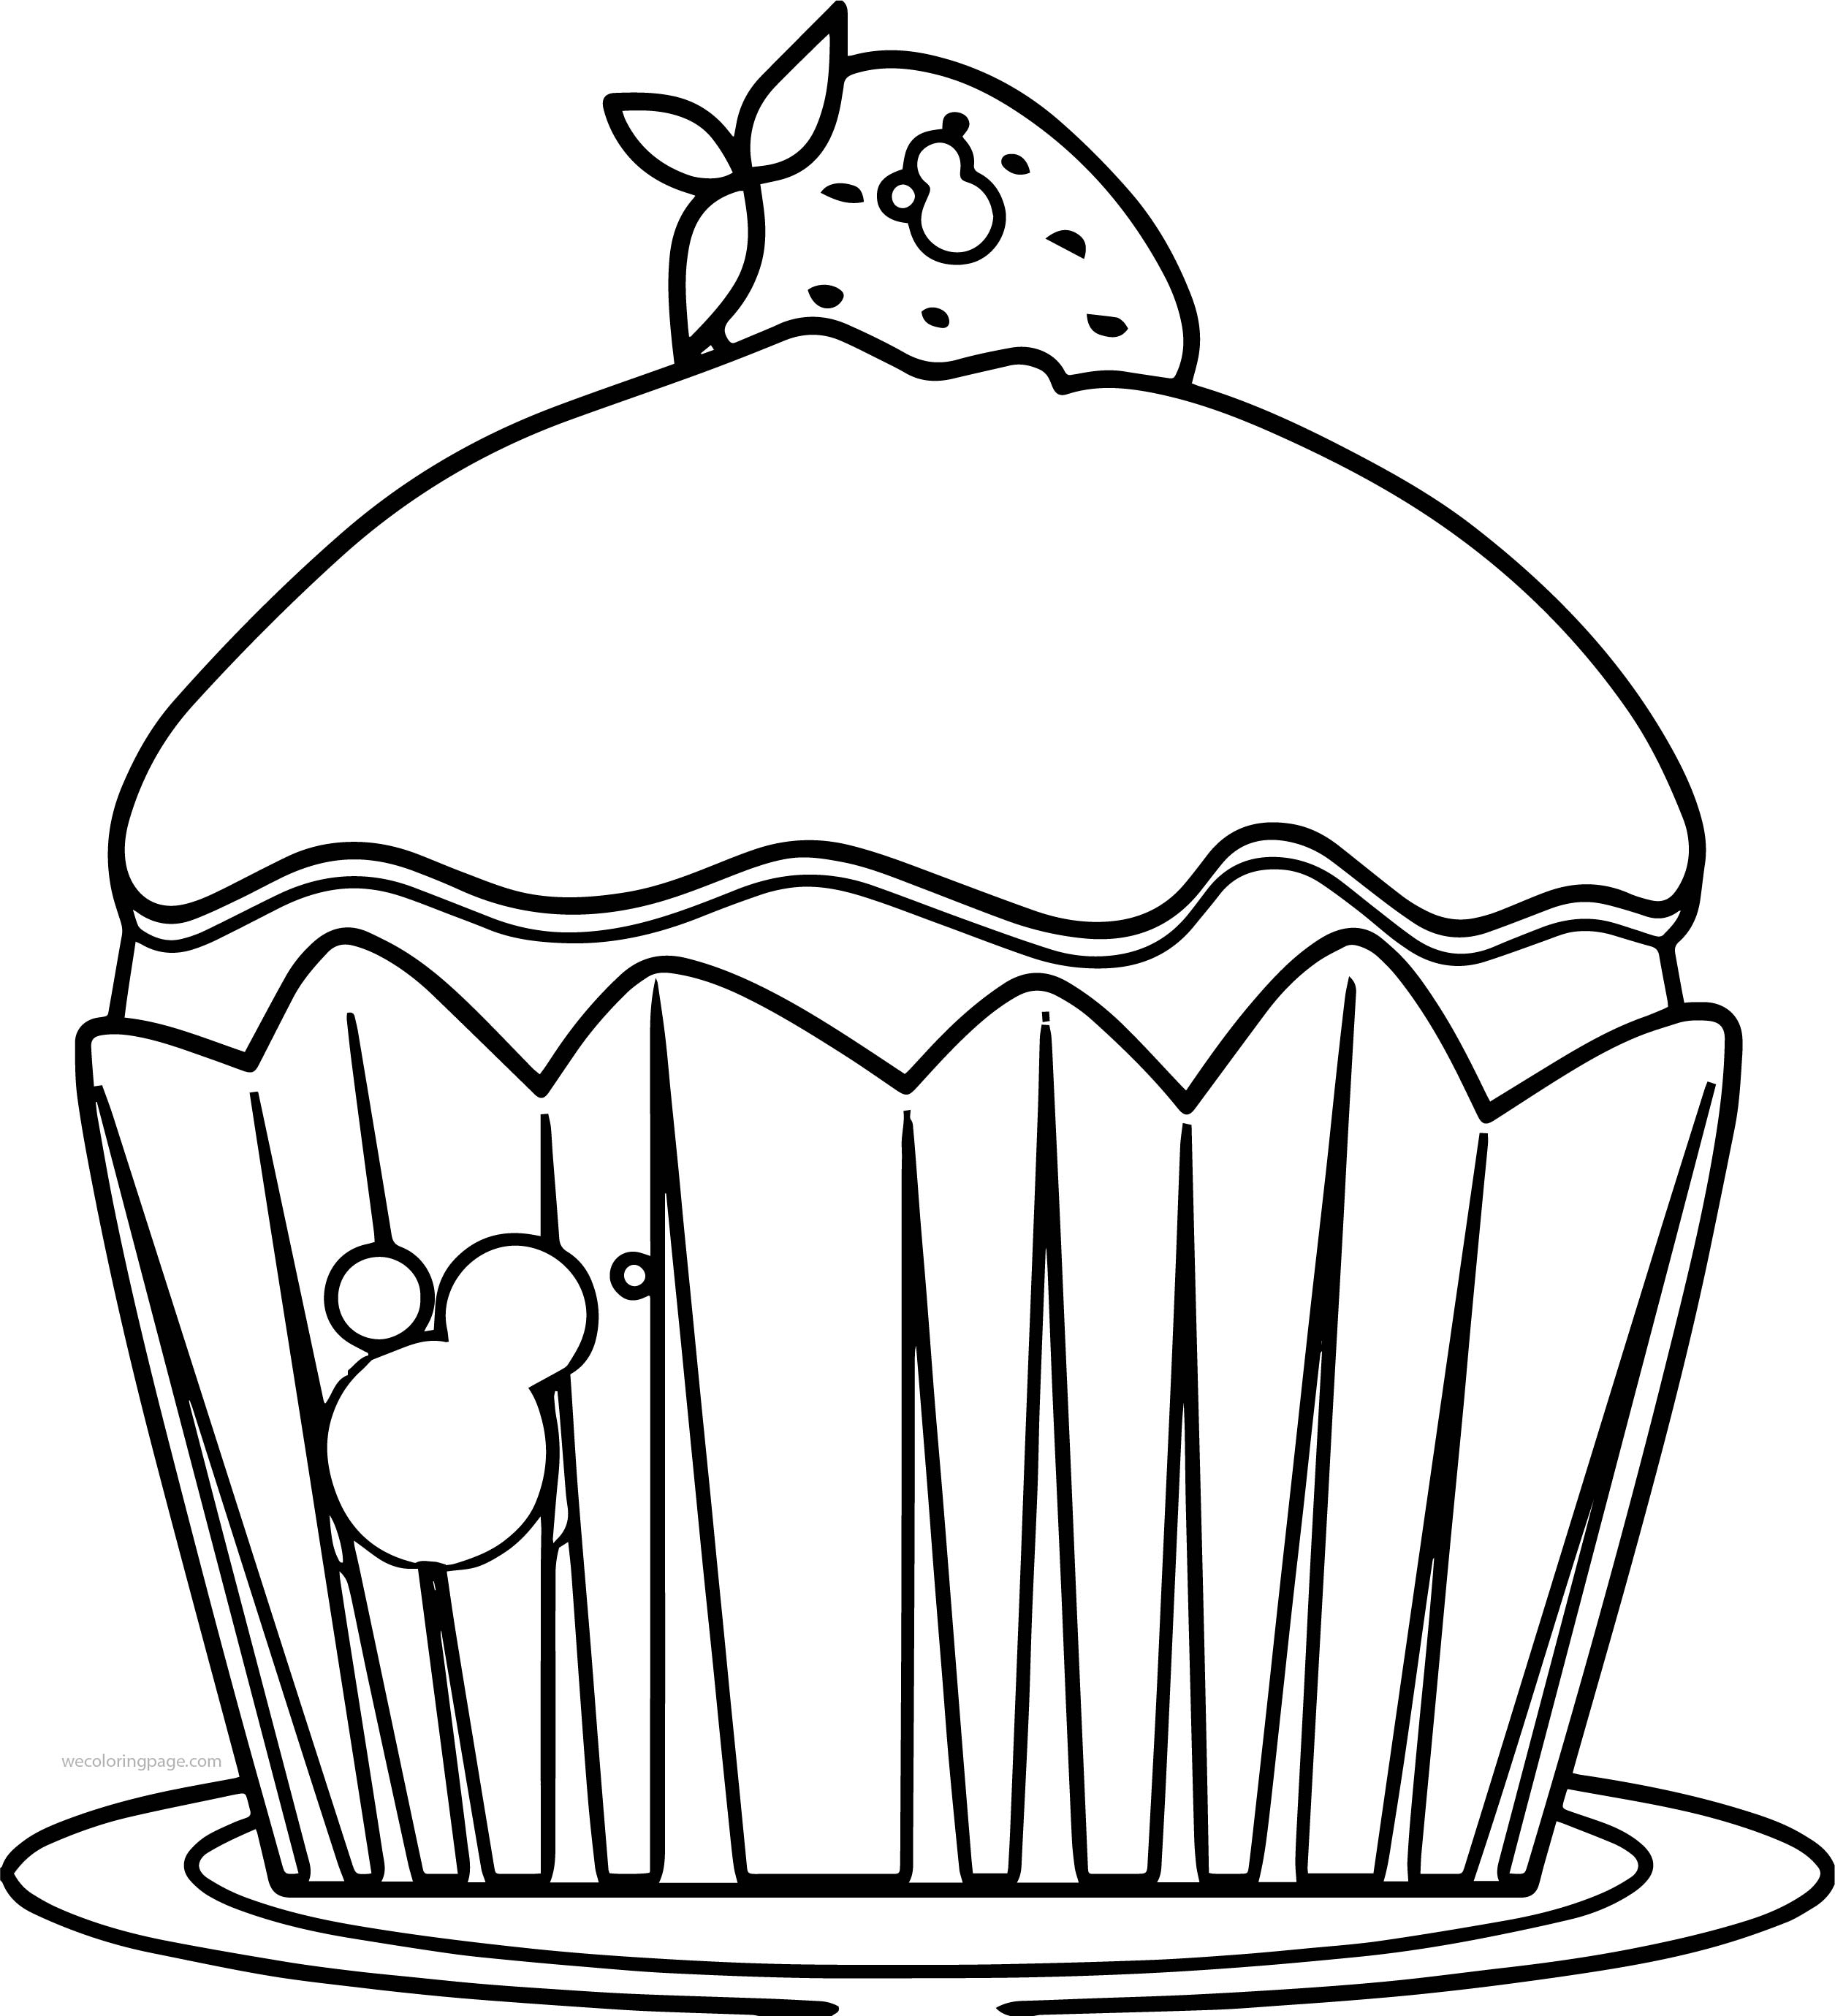 Cherry Cupcake Cup Cake Coloring Page